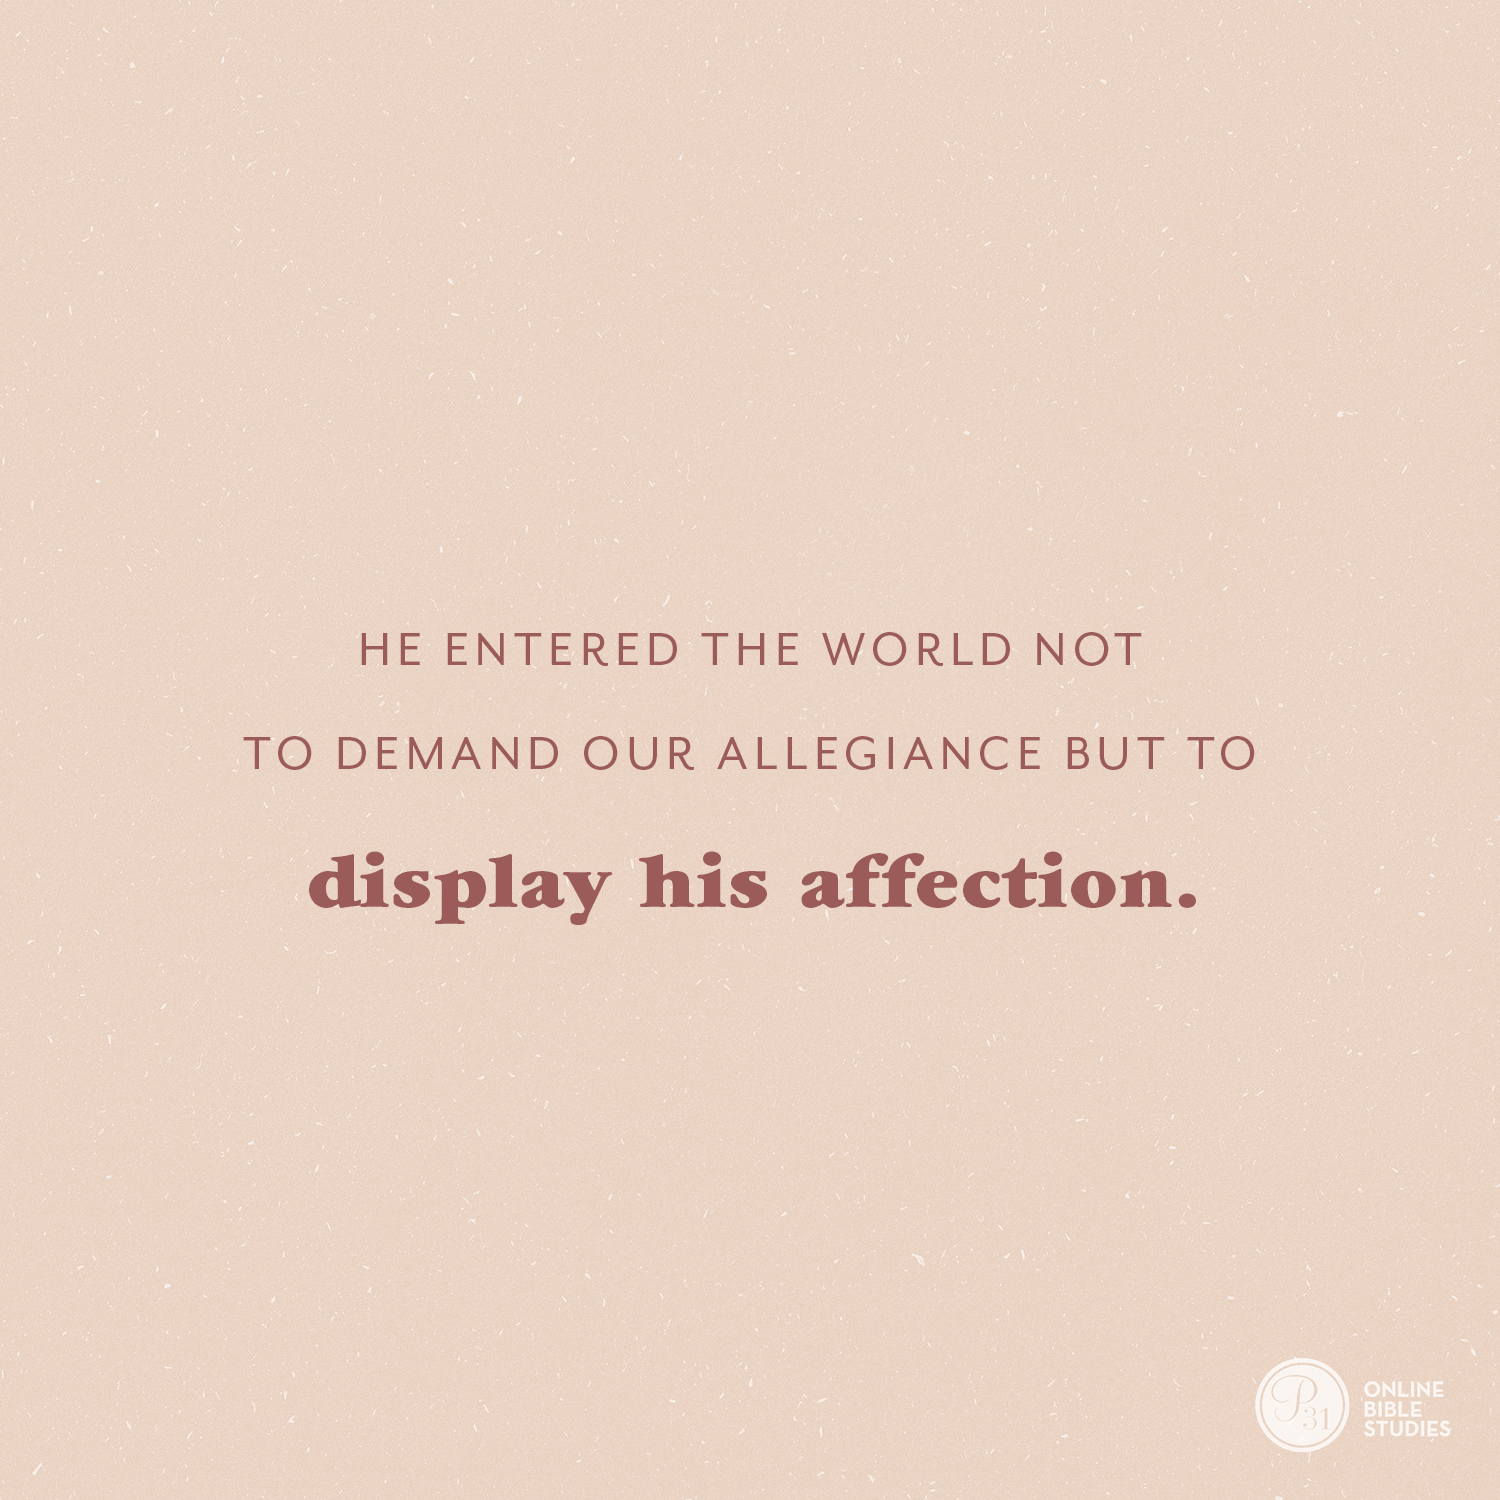 """""""He entered the world not to demand our allegiance but to display his affection."""" - Max Lucado  #BecauseOfBethlehem 